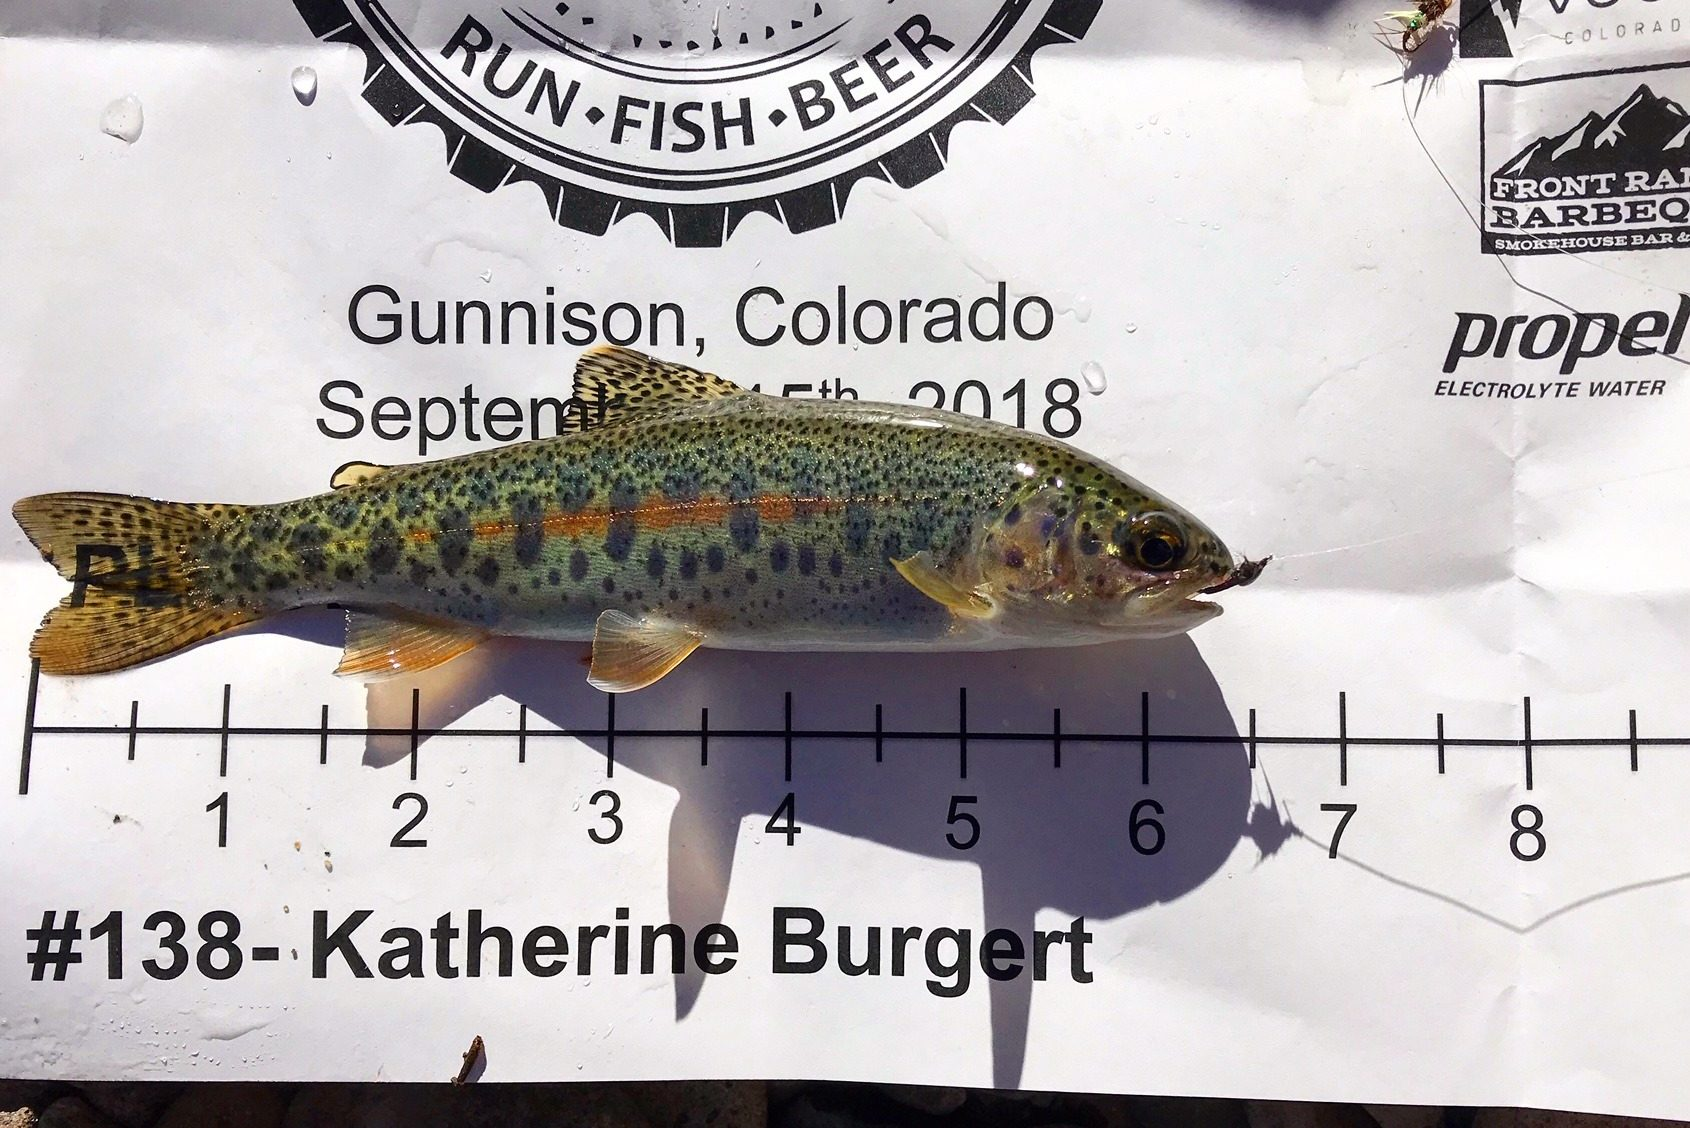 A small trout on a score sheet for the Flyathlon